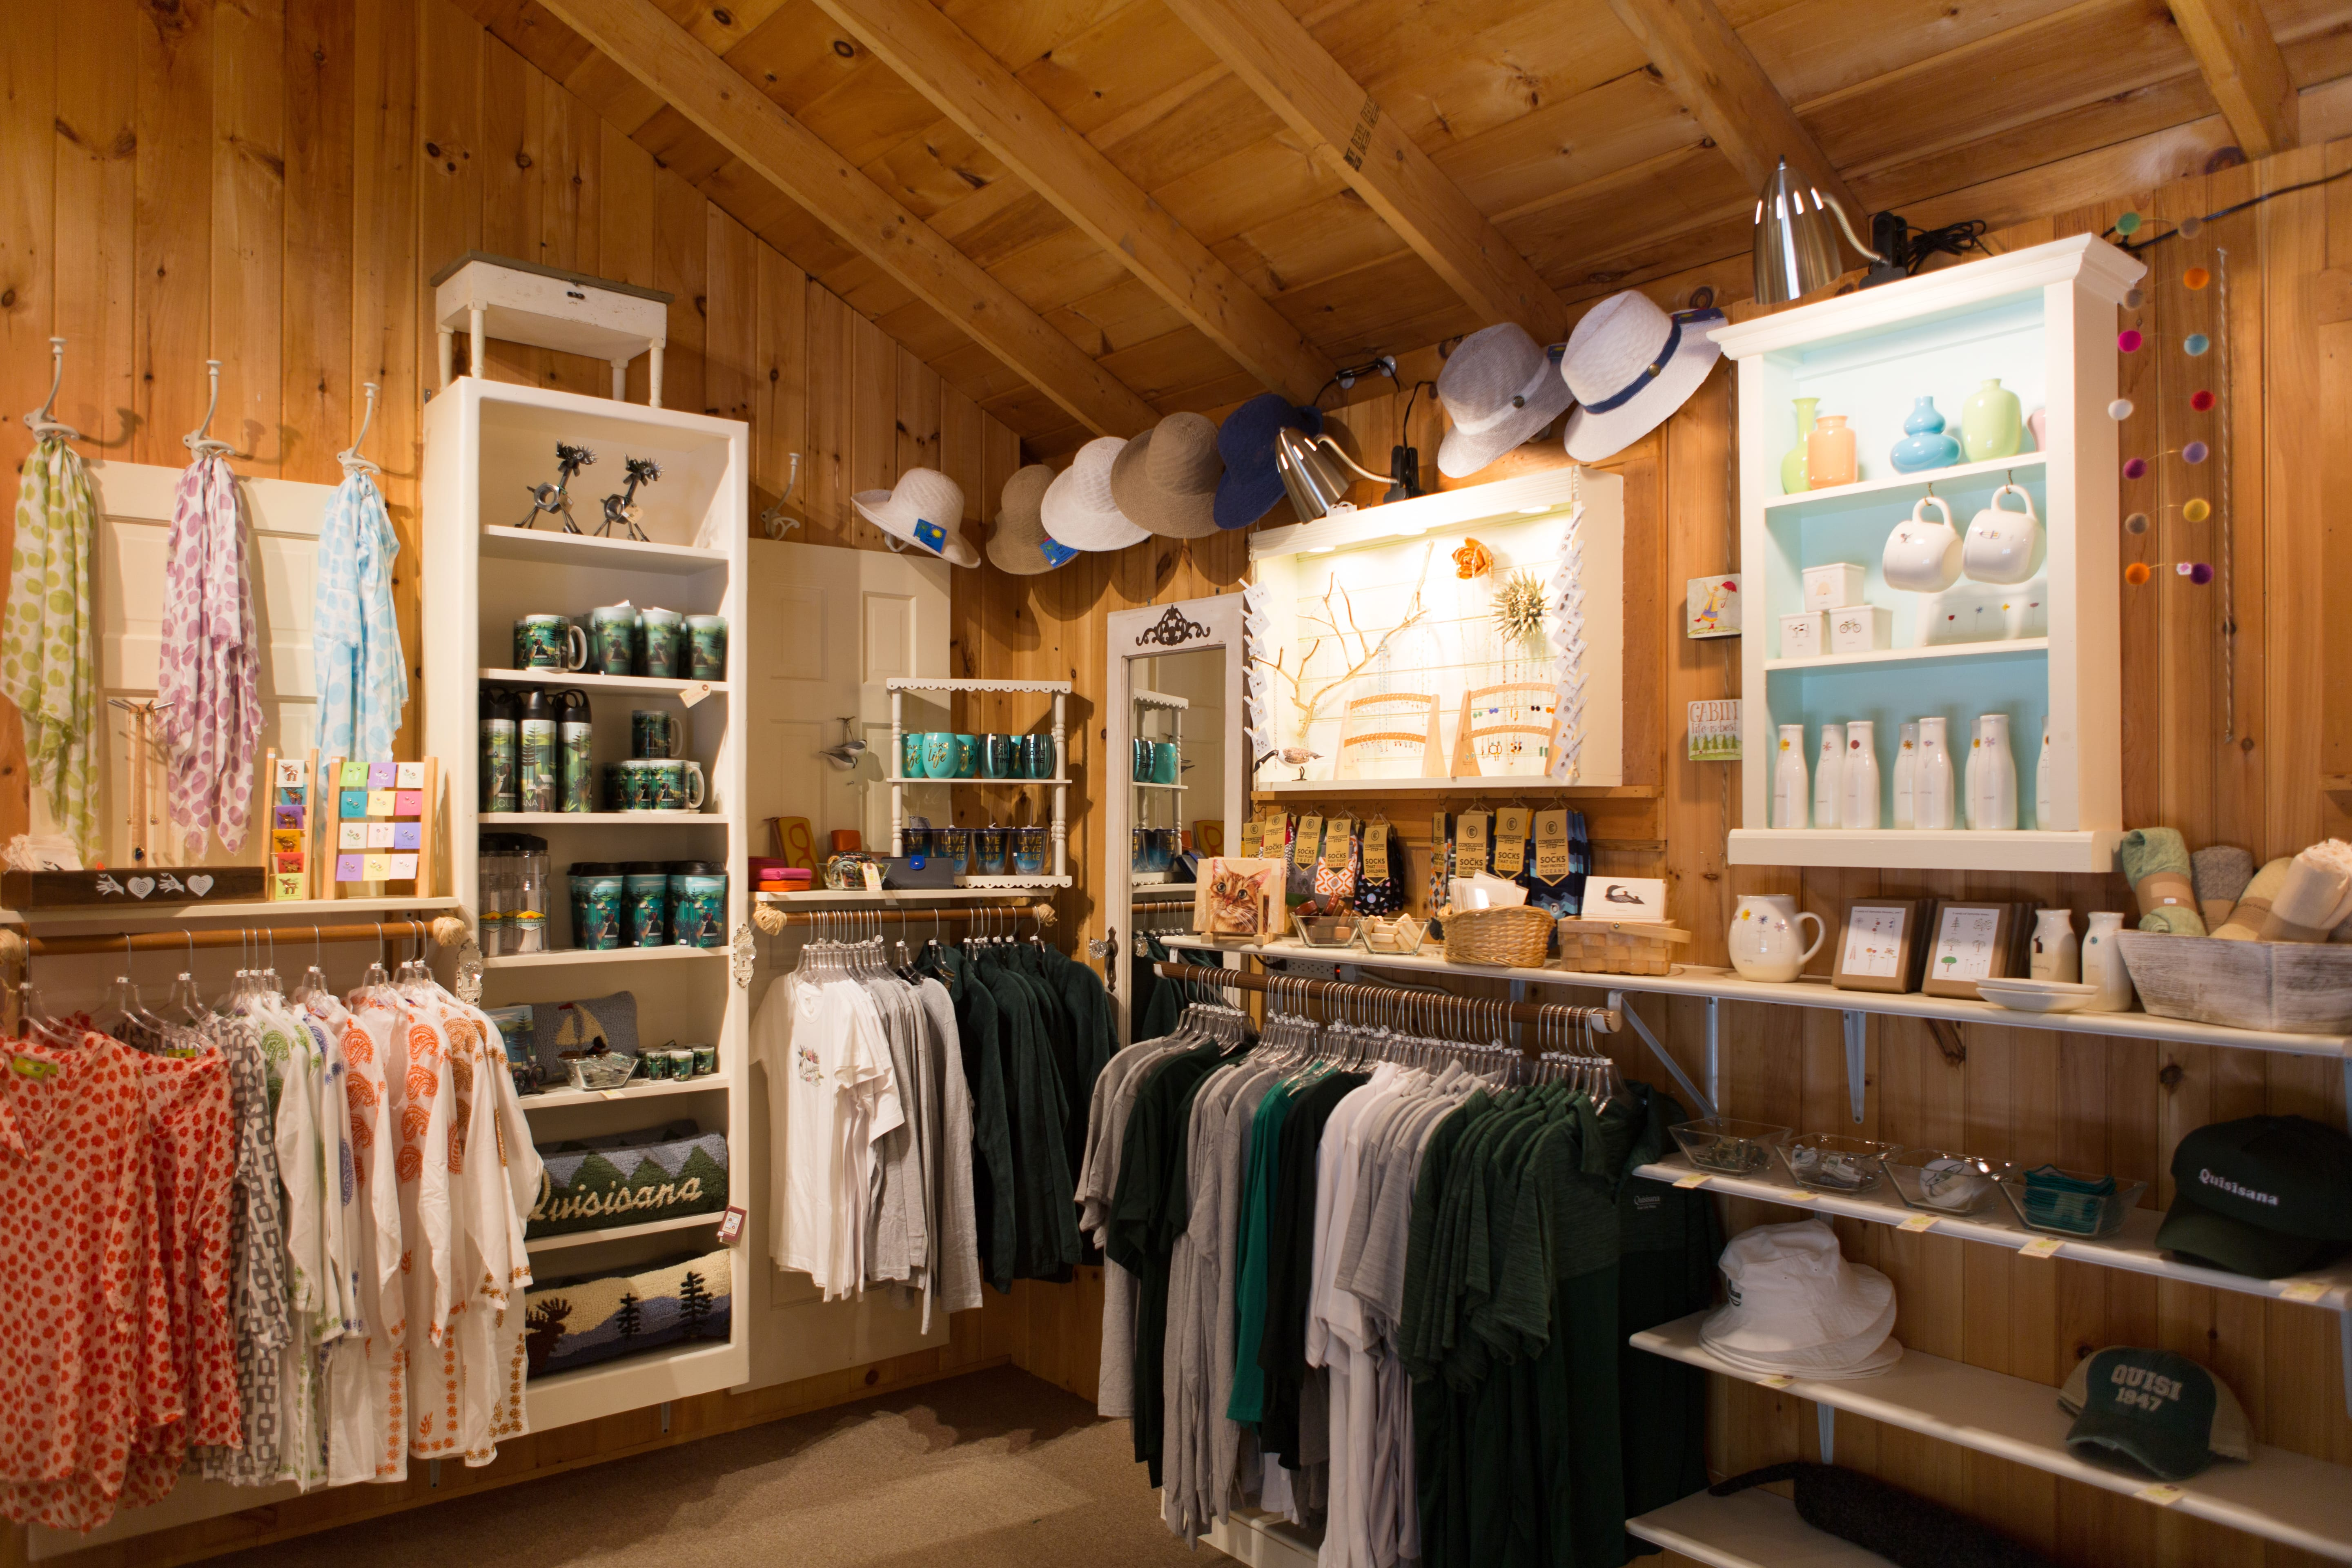 Inside view of the gift shop